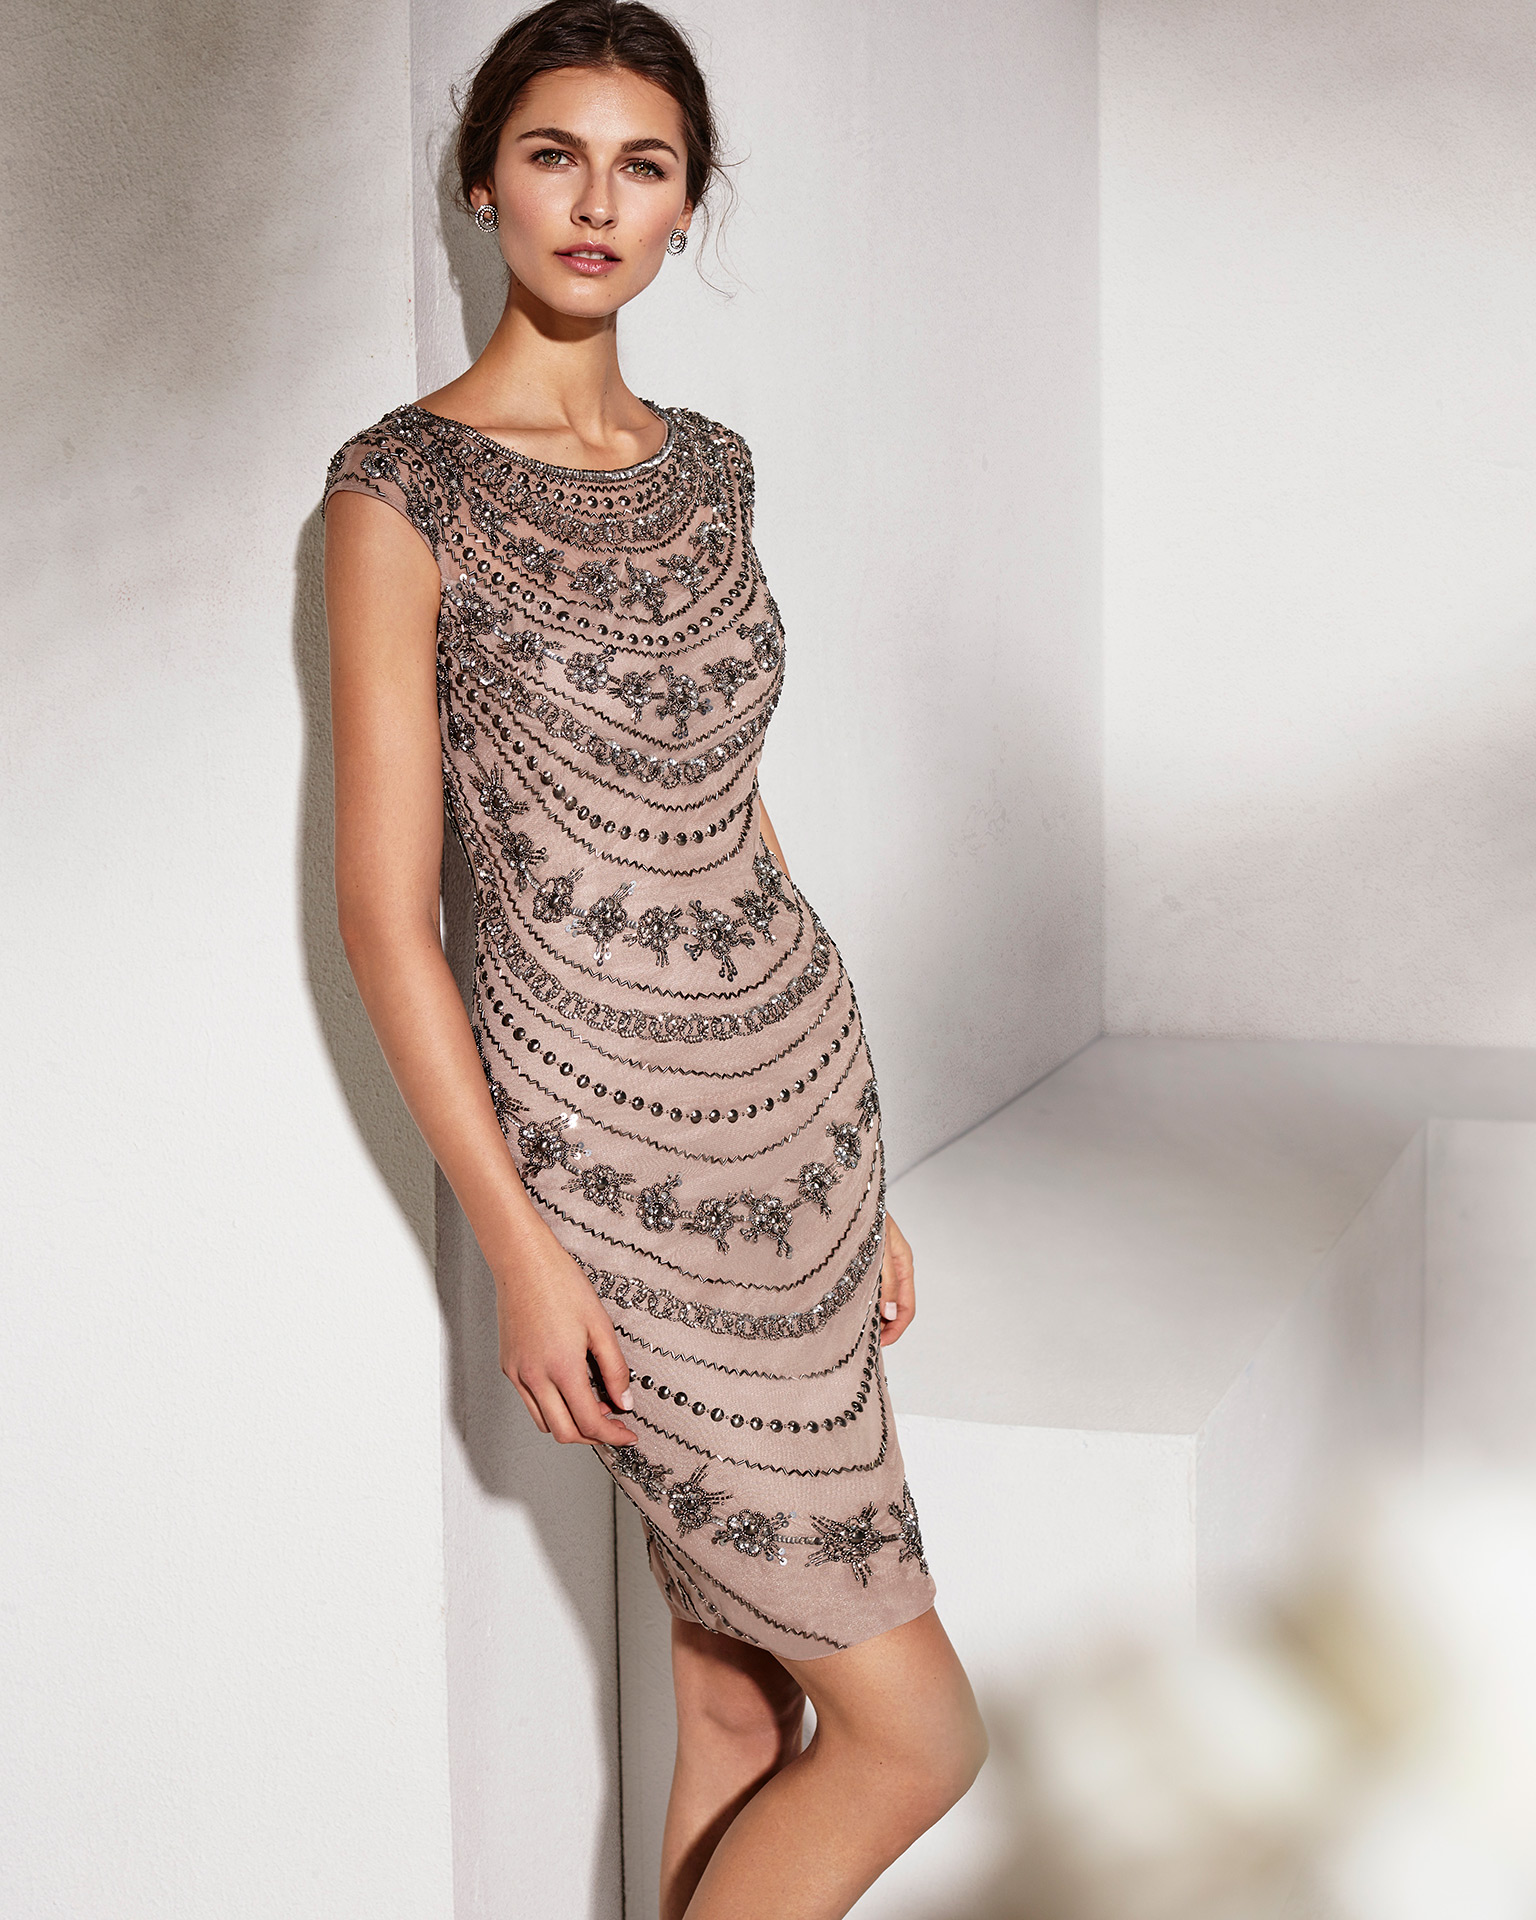 Short mikado cocktail dress with beaded lace bodice and three-quarter sleeves. Available in red, silver and cobalt.